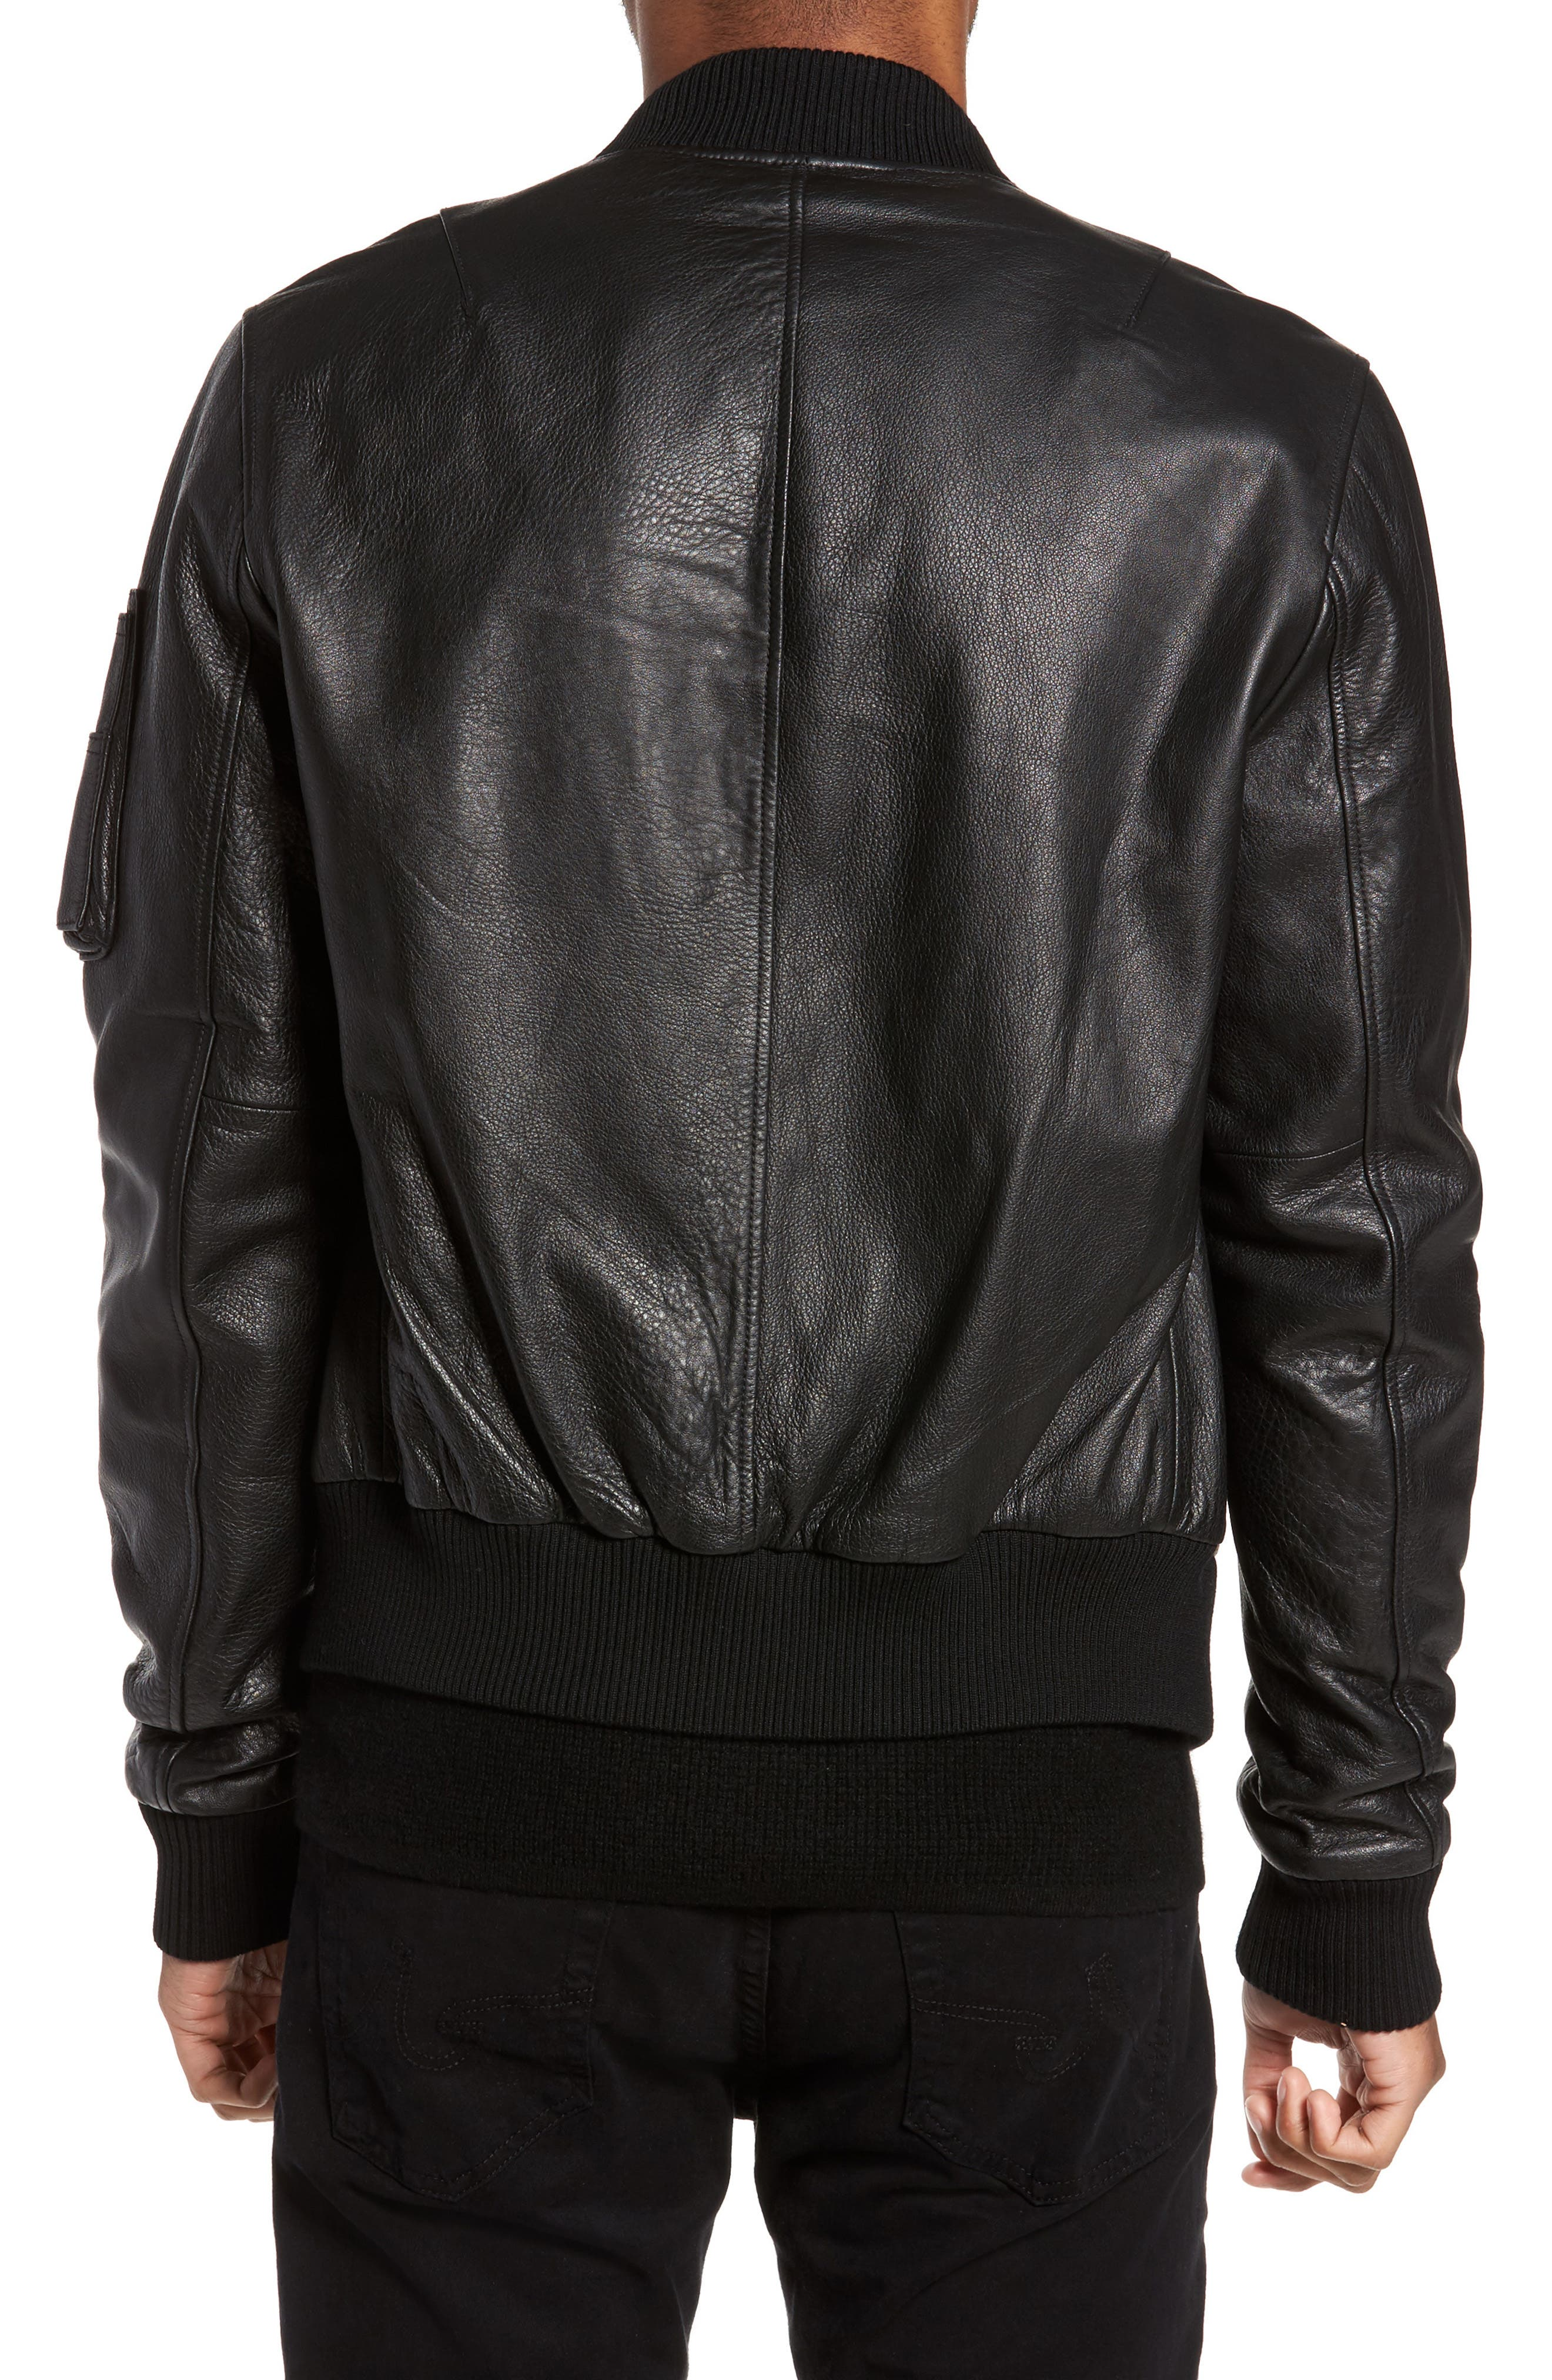 Lambskin Bomber Jacket,                             Alternate thumbnail 2, color,                             001